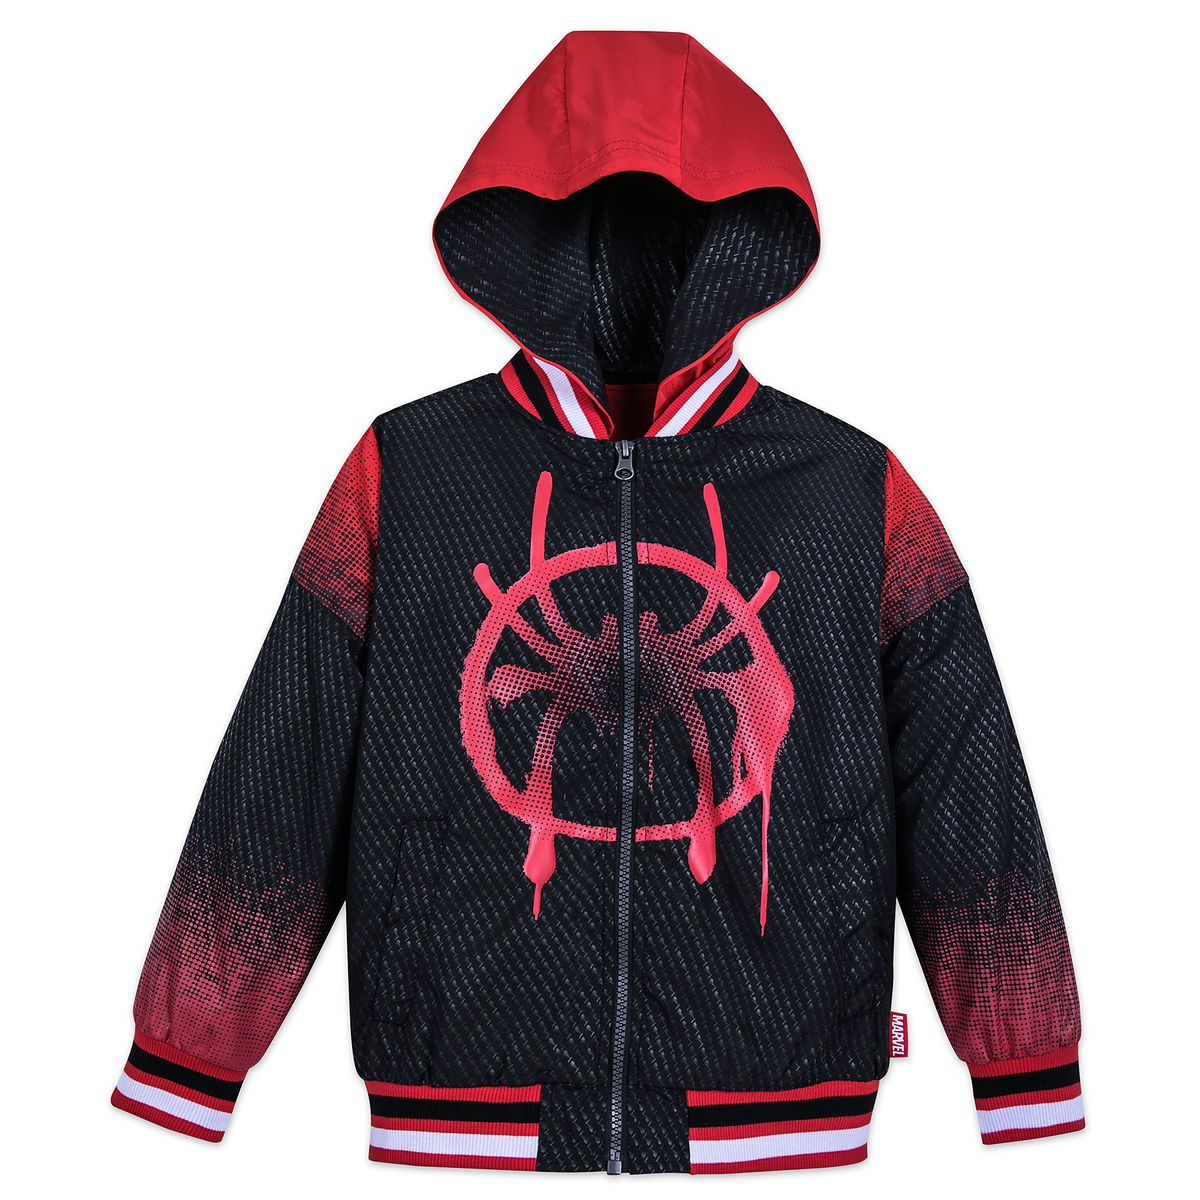 4068cec0 Product Image of Spider-Man: Into the Spider-Verse Hooded Jacket for Boys #  1